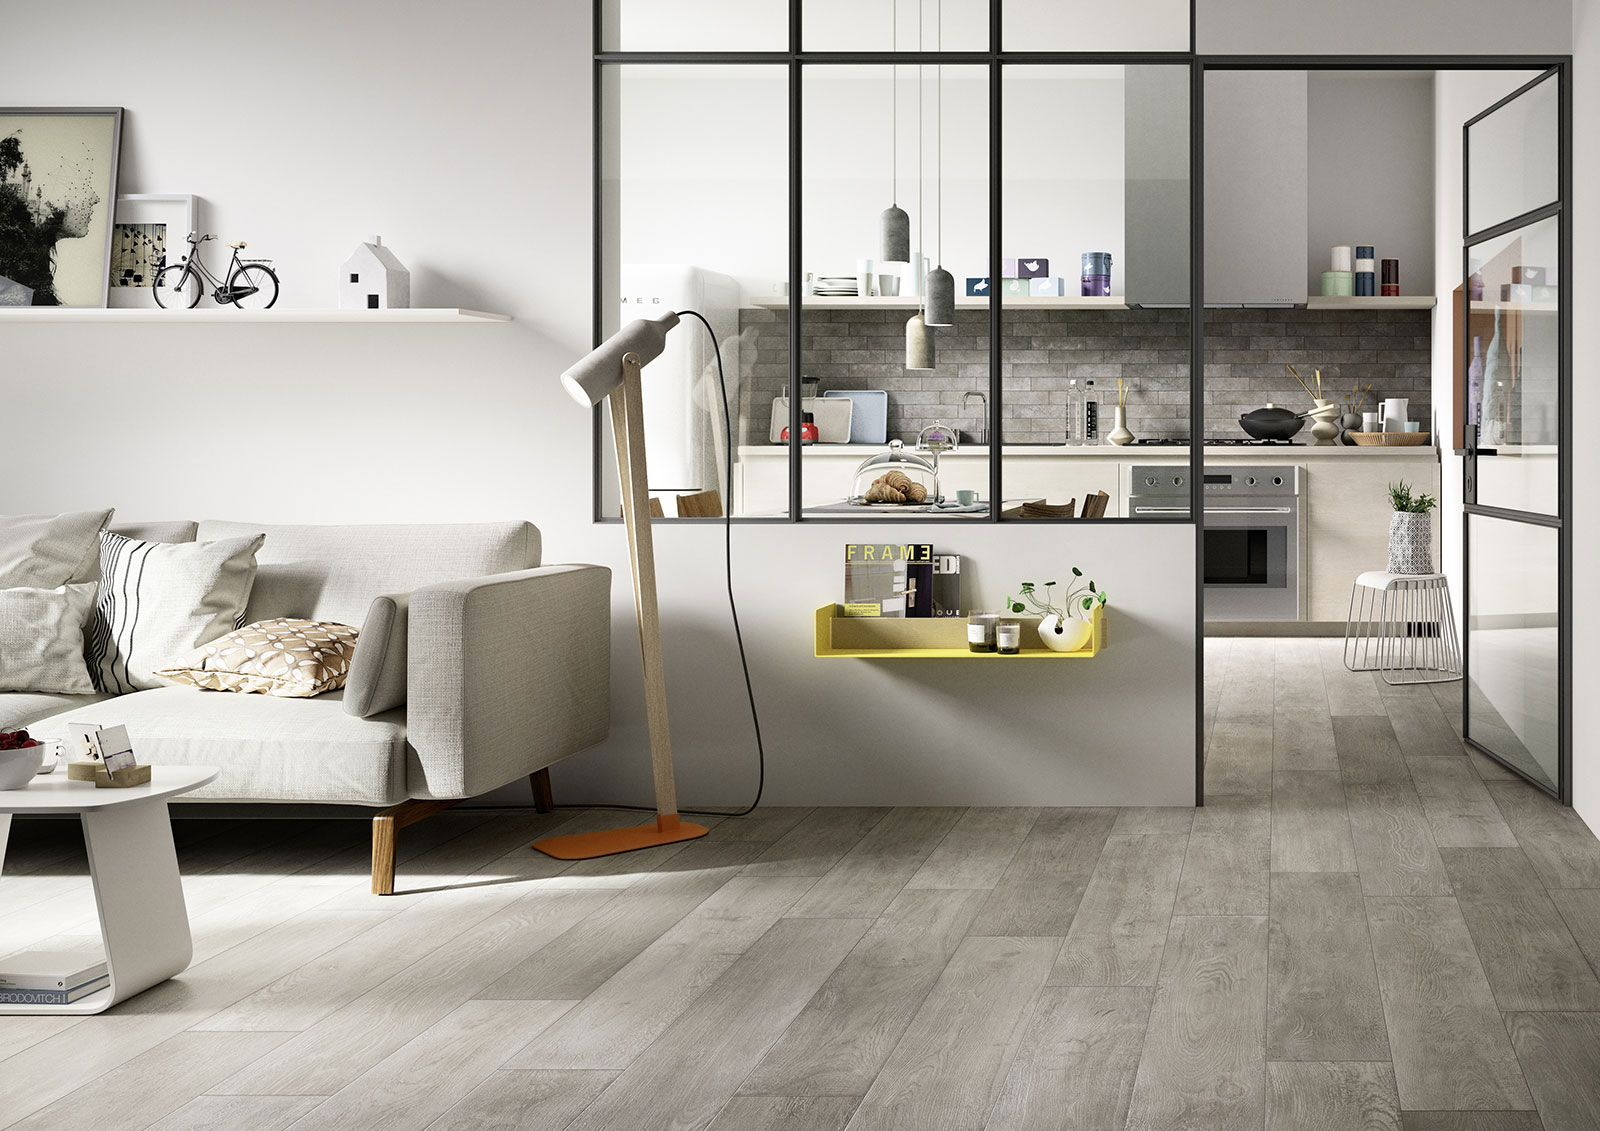 carrelage cuisine des id es en c ramique et gr s marazzi. Black Bedroom Furniture Sets. Home Design Ideas